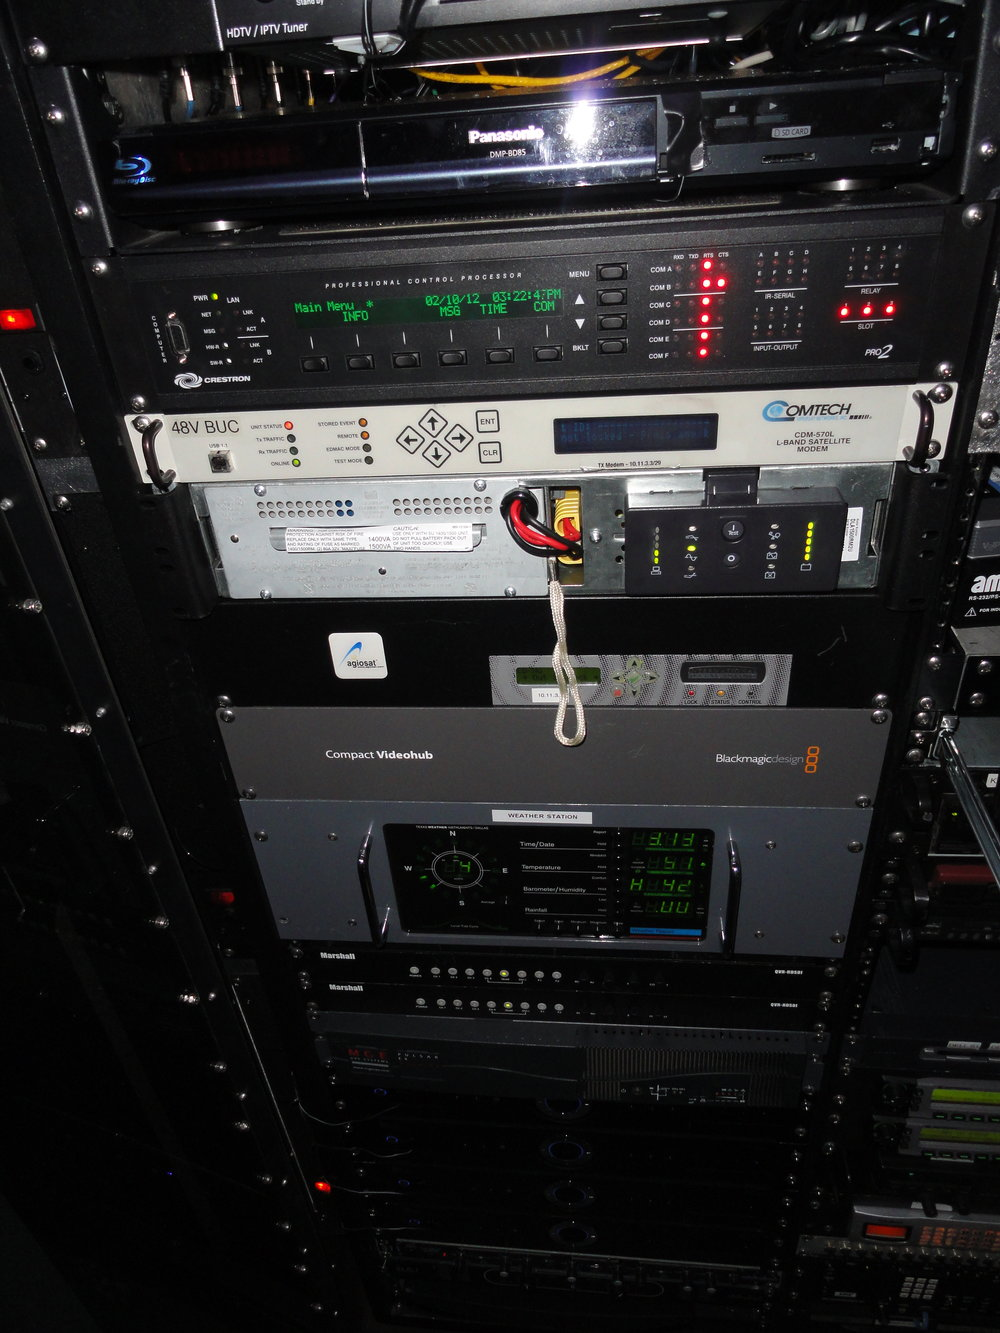 25 CVS - Arlington Fire Mobile Command AV Upgrade pic #6.JPG